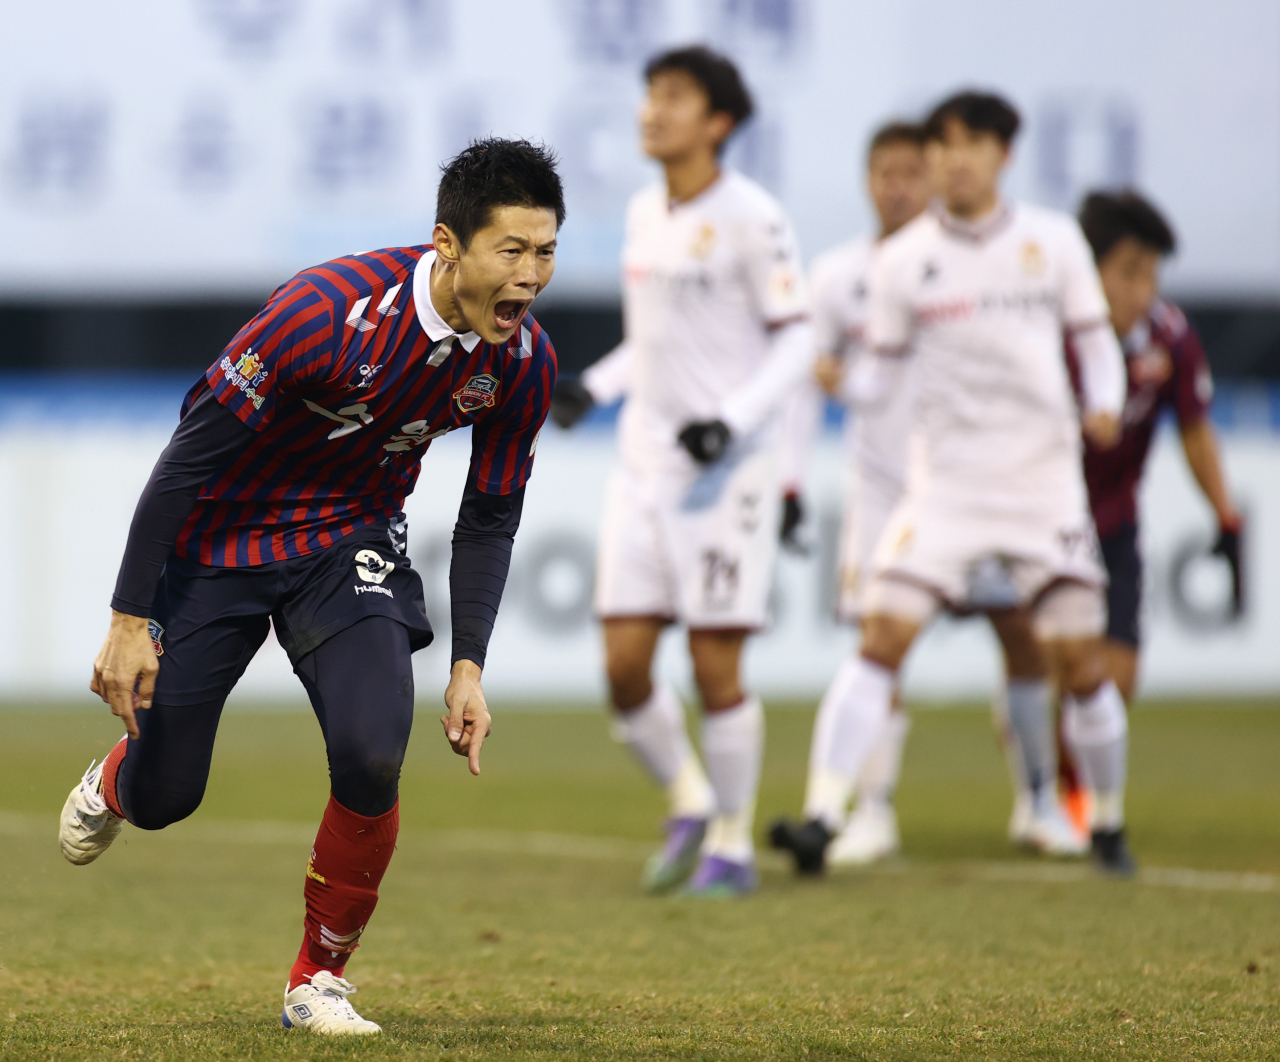 An Byong-jun of Suwon FC celebrates his goal against Gyeongnam FC during the K League 2 promotion playoff match at Suwon Sports Complex in Suwon, 45 kilometers south of Seoul, on Sunday. (Yonhap)